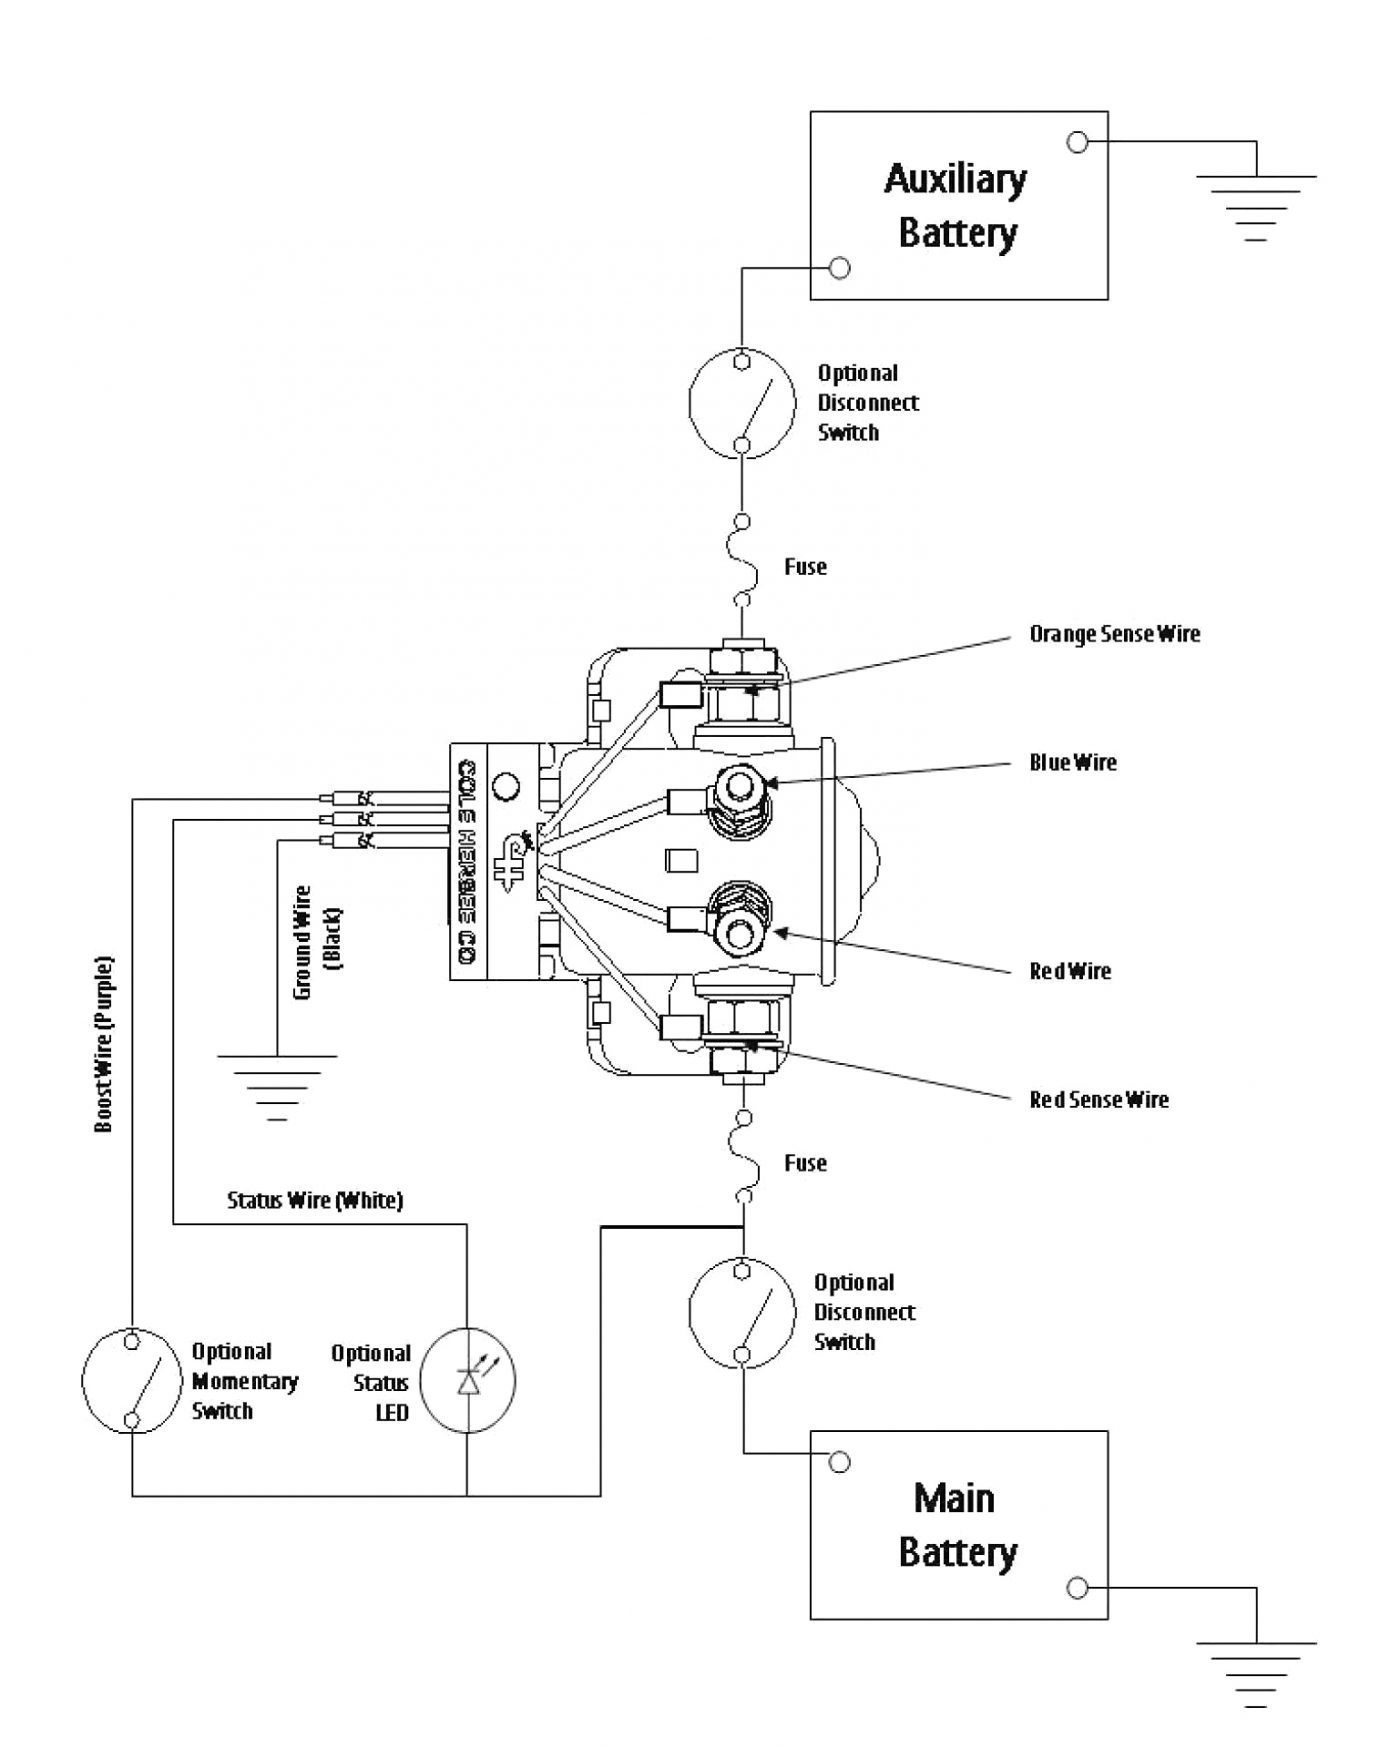 Battery Wiring Diagram For Club Car